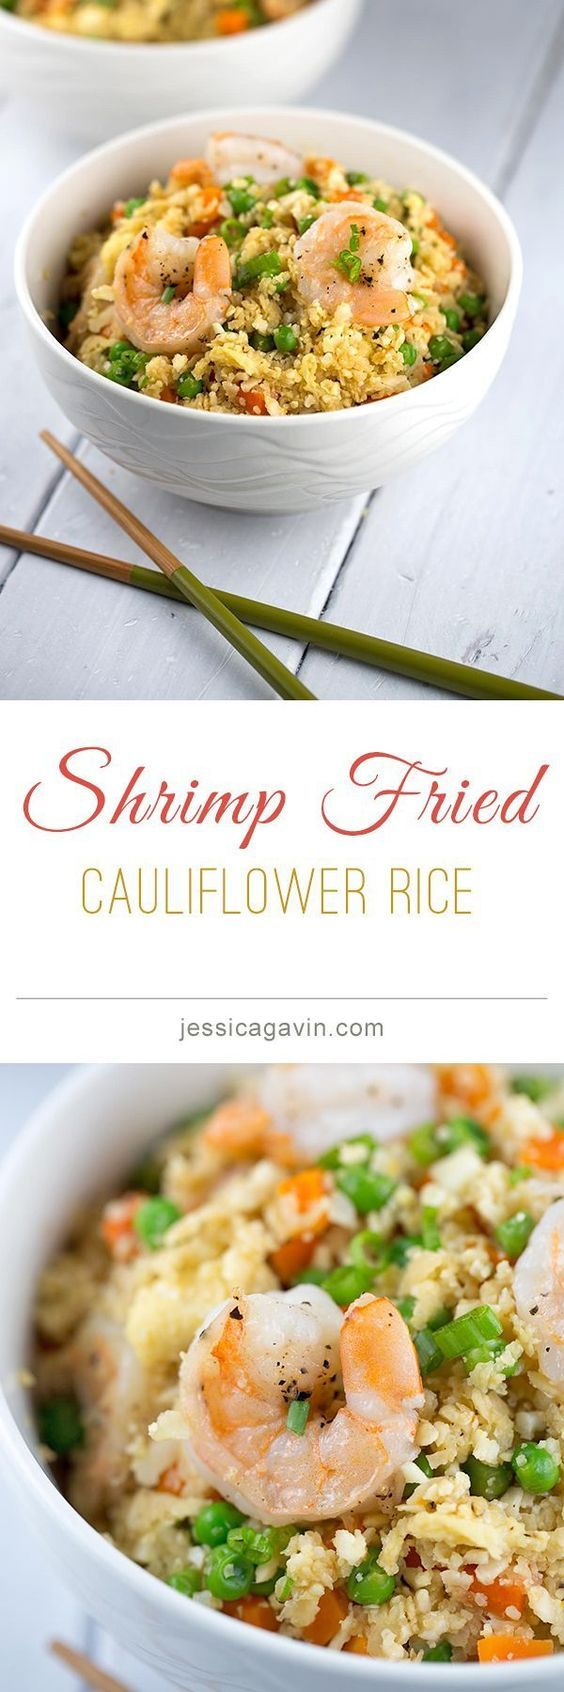 "Low Carb alternative, Shrimp Fried ""Cauliflower"" Rice 